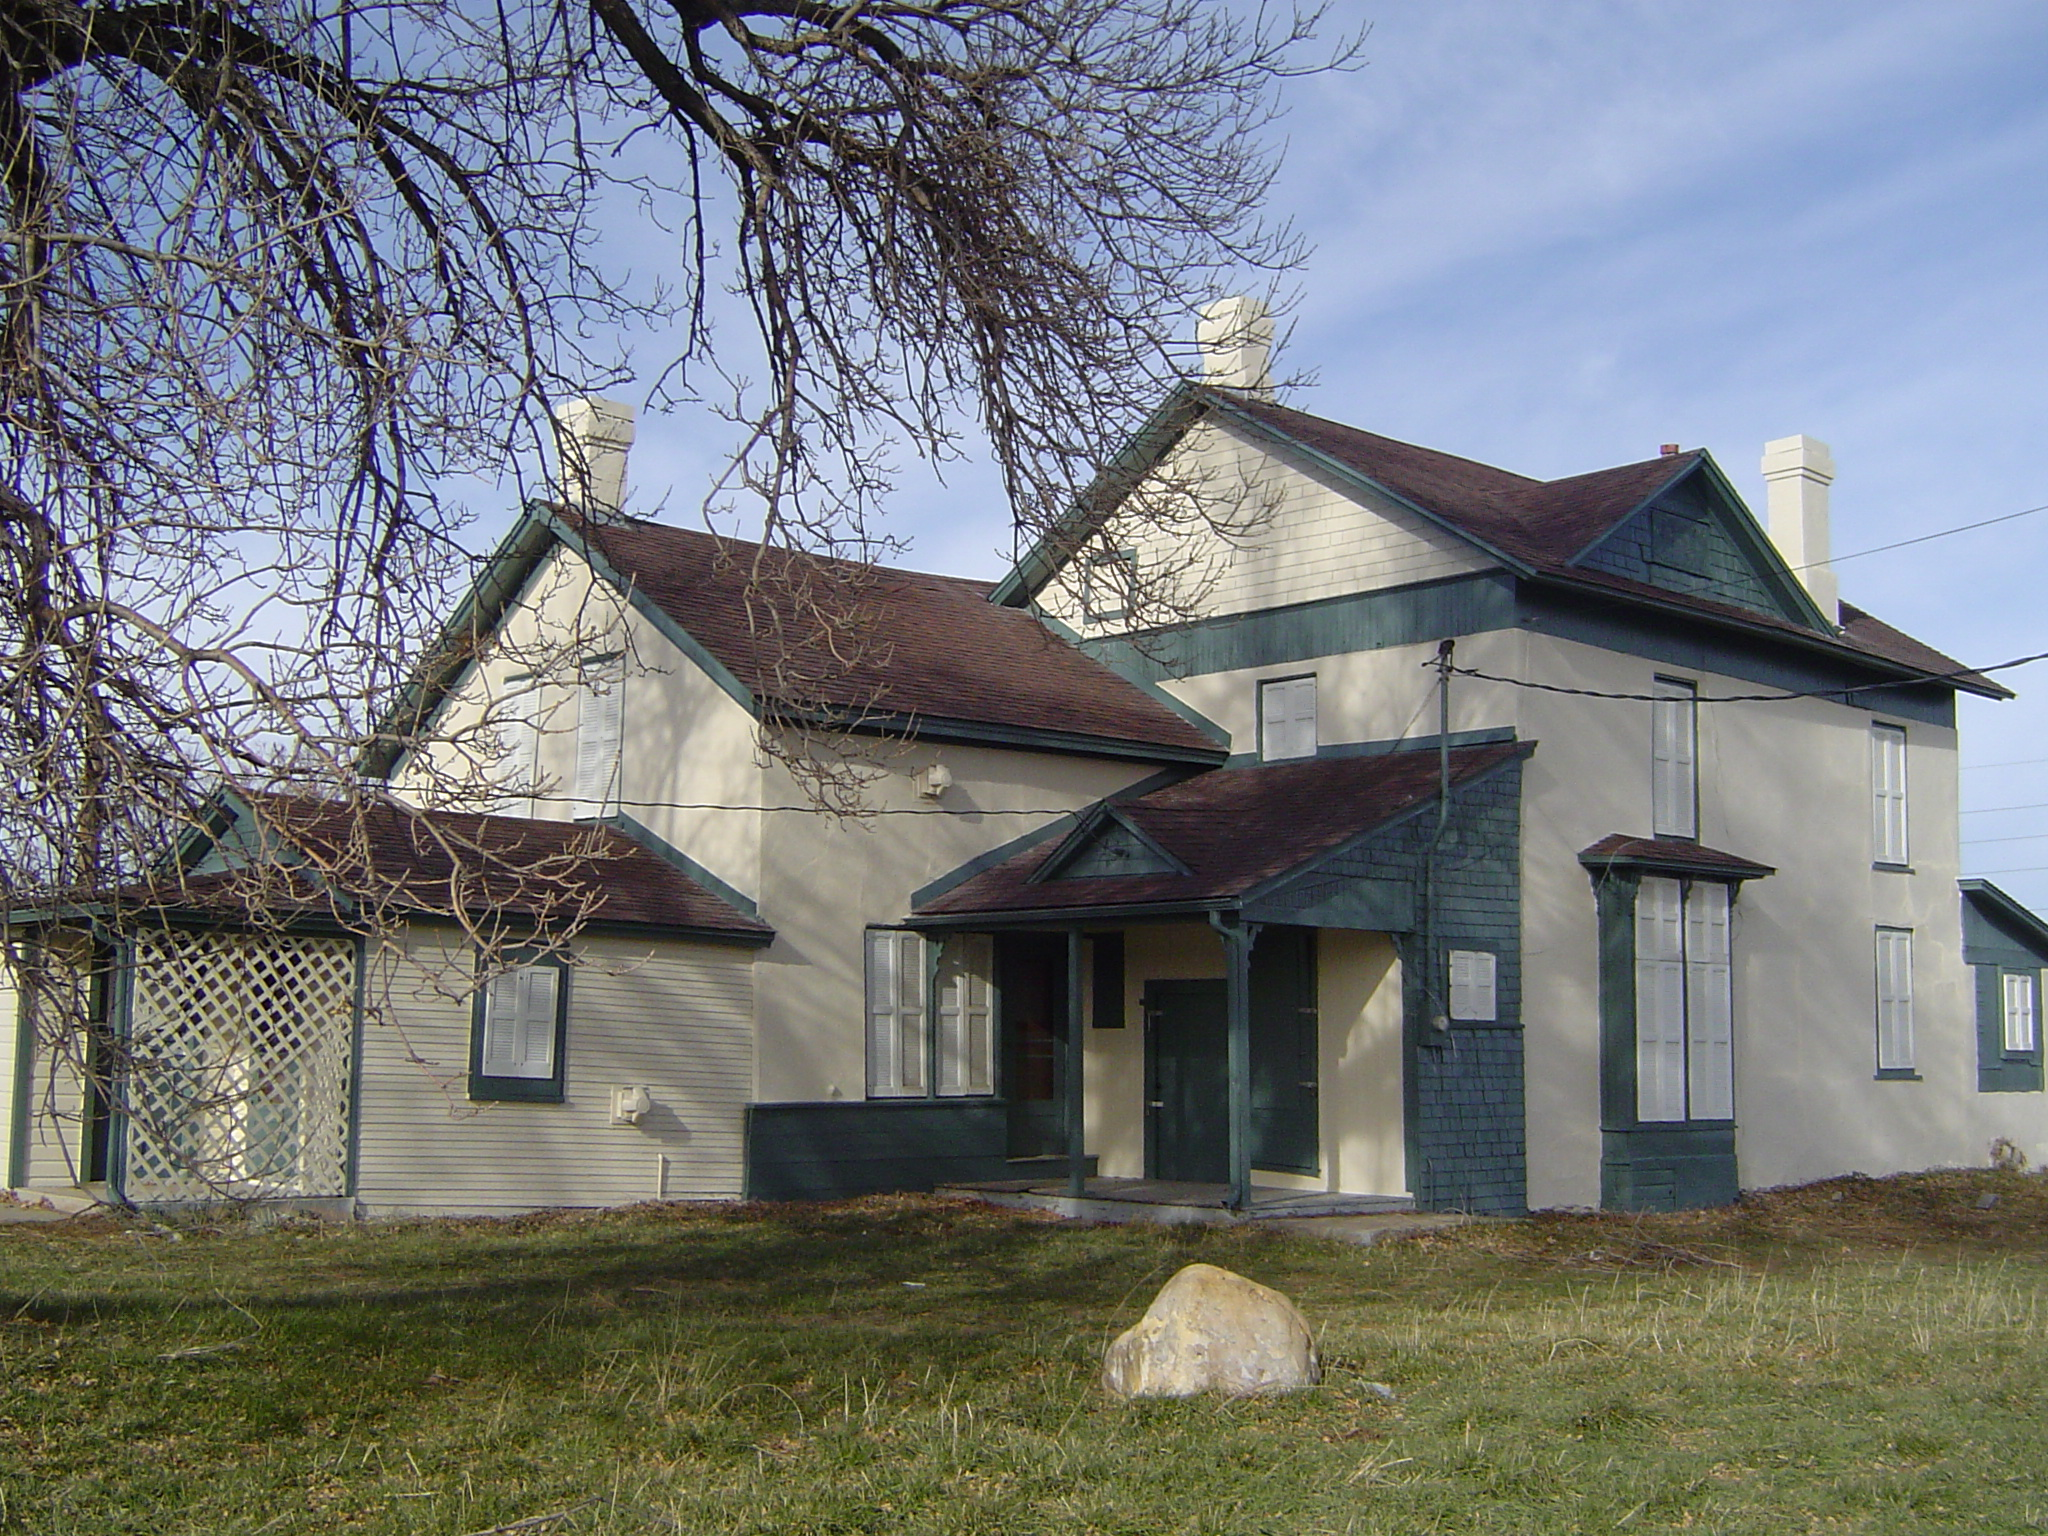 Historic farm house exterior painting update for boulder county open space division maurerpainting - Painting old houses exterior concept ...